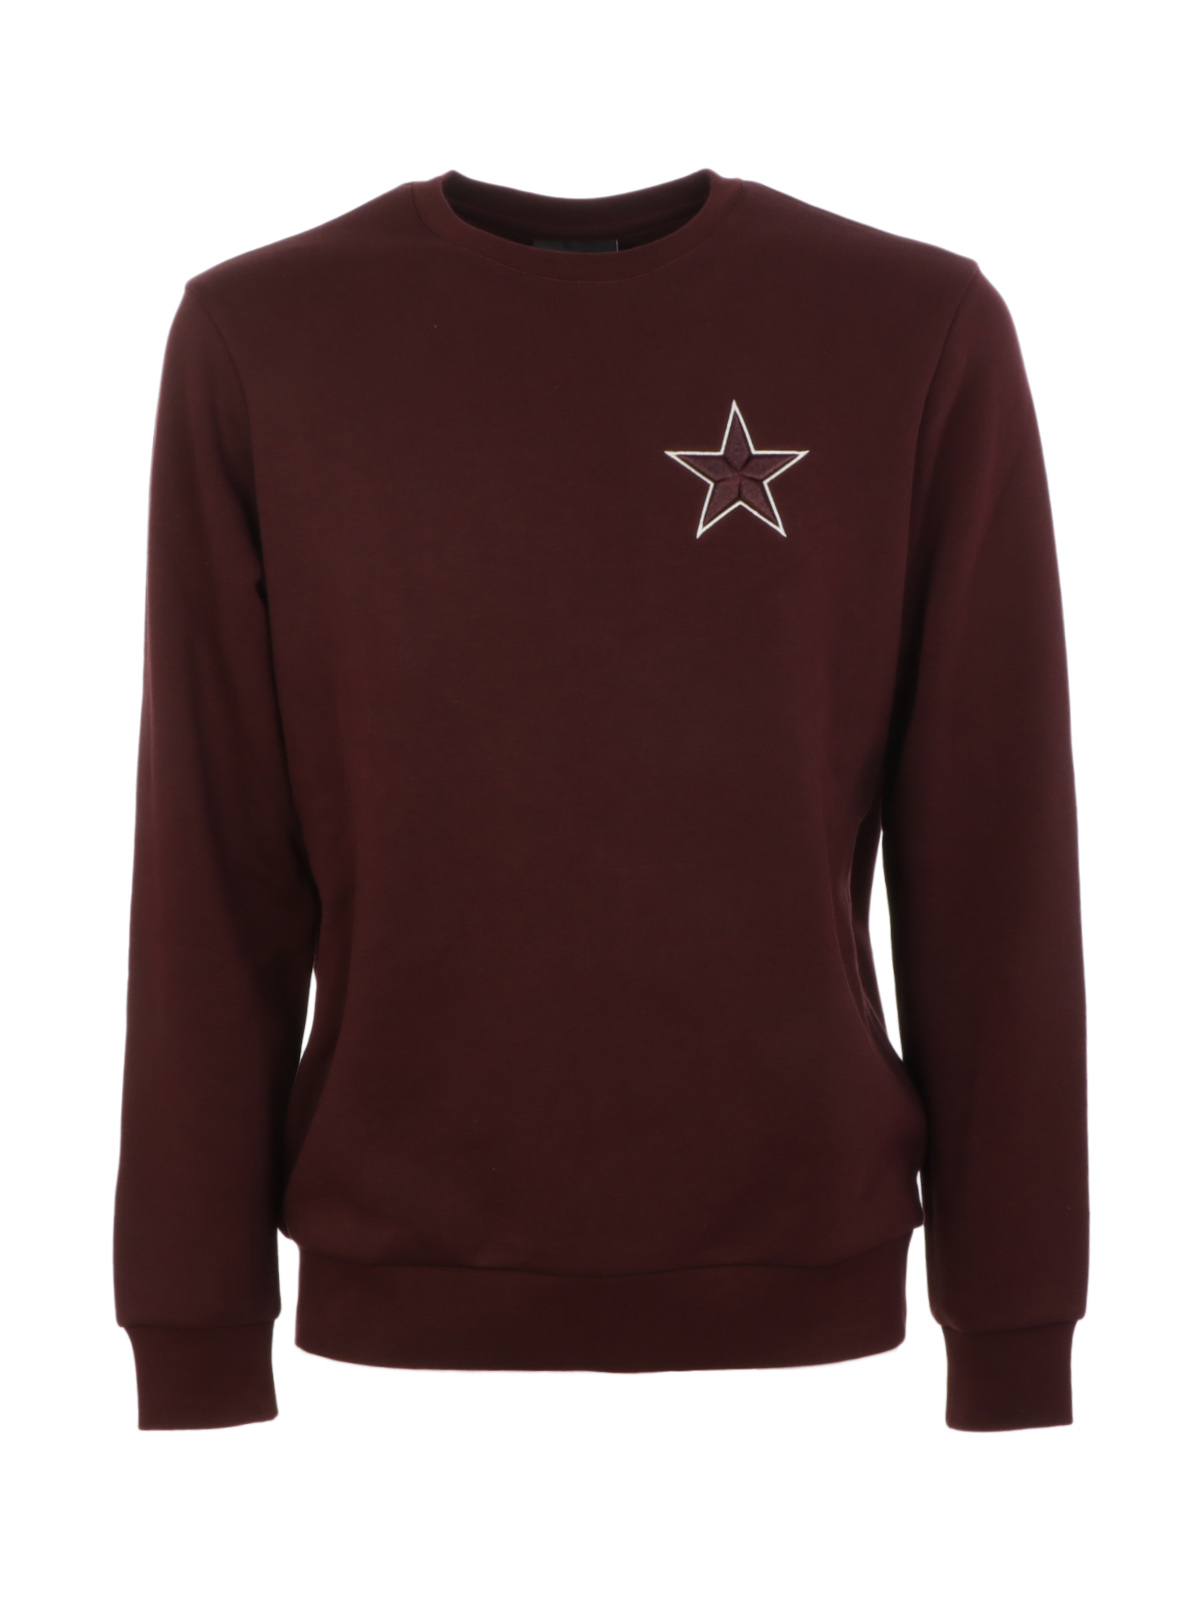 Picture of EMPORIO ARMANI | Men's Sweatshirt with Star